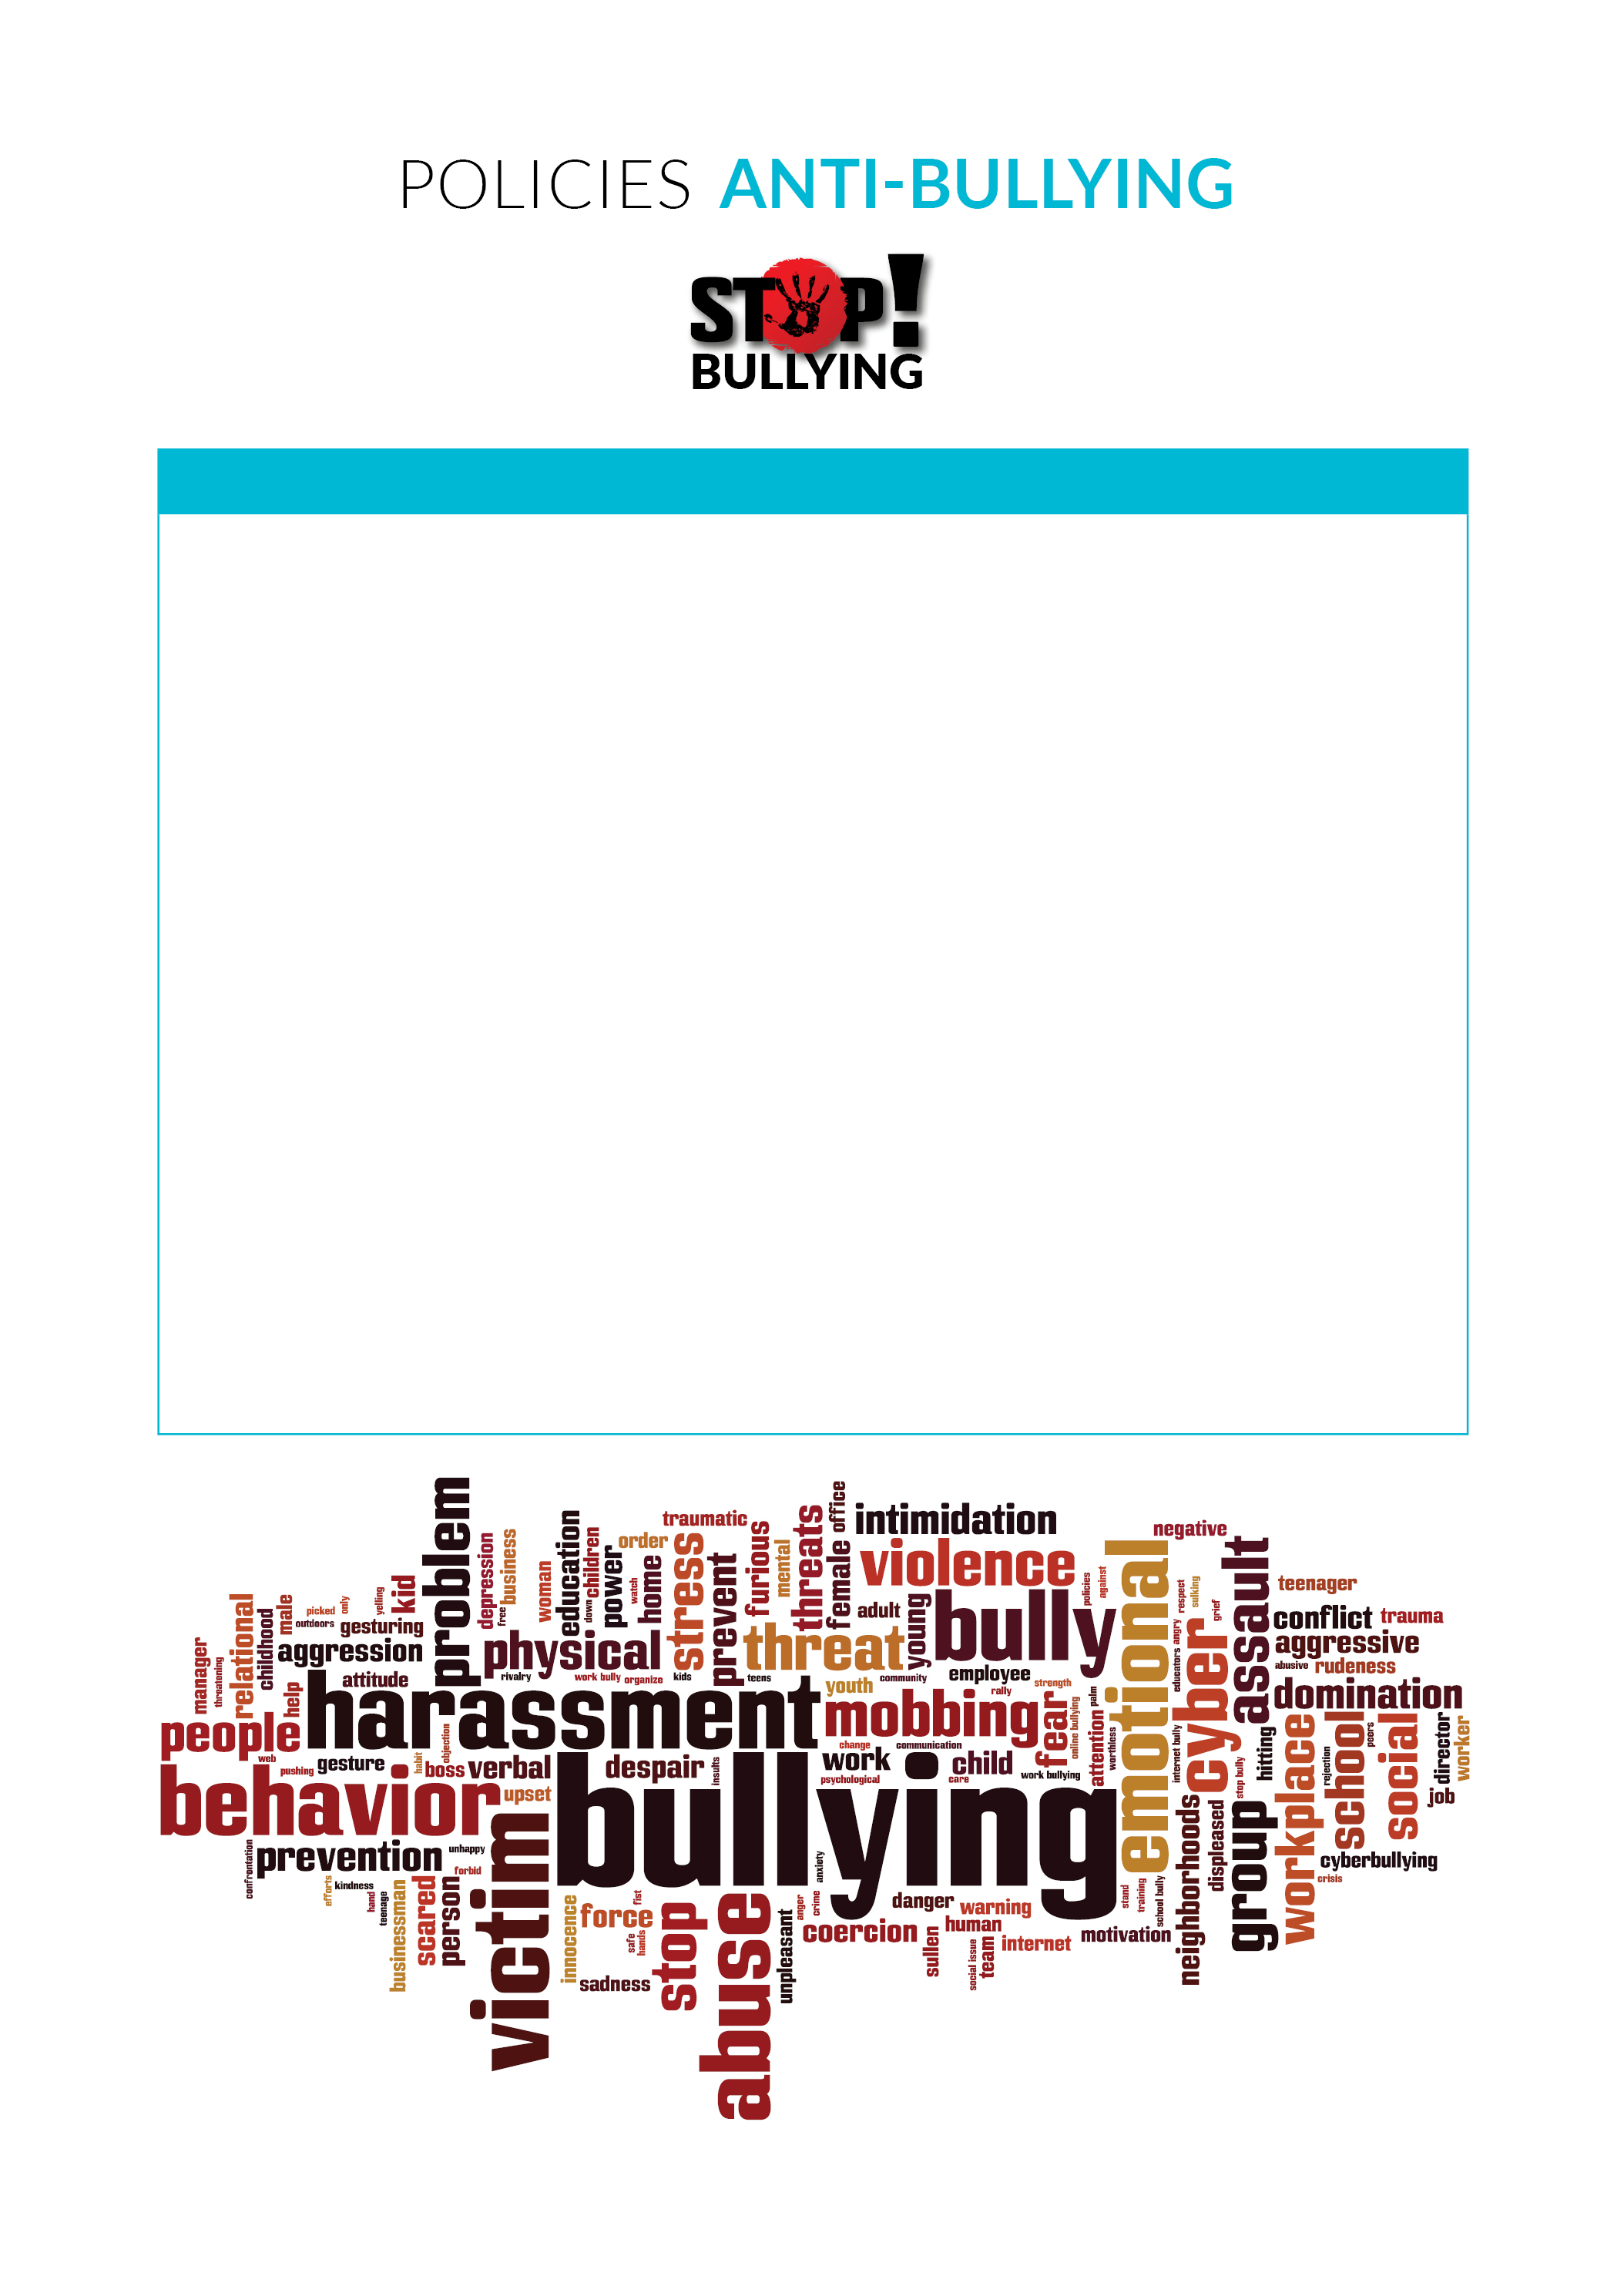 Policies - Anti-Bullying Blank Template